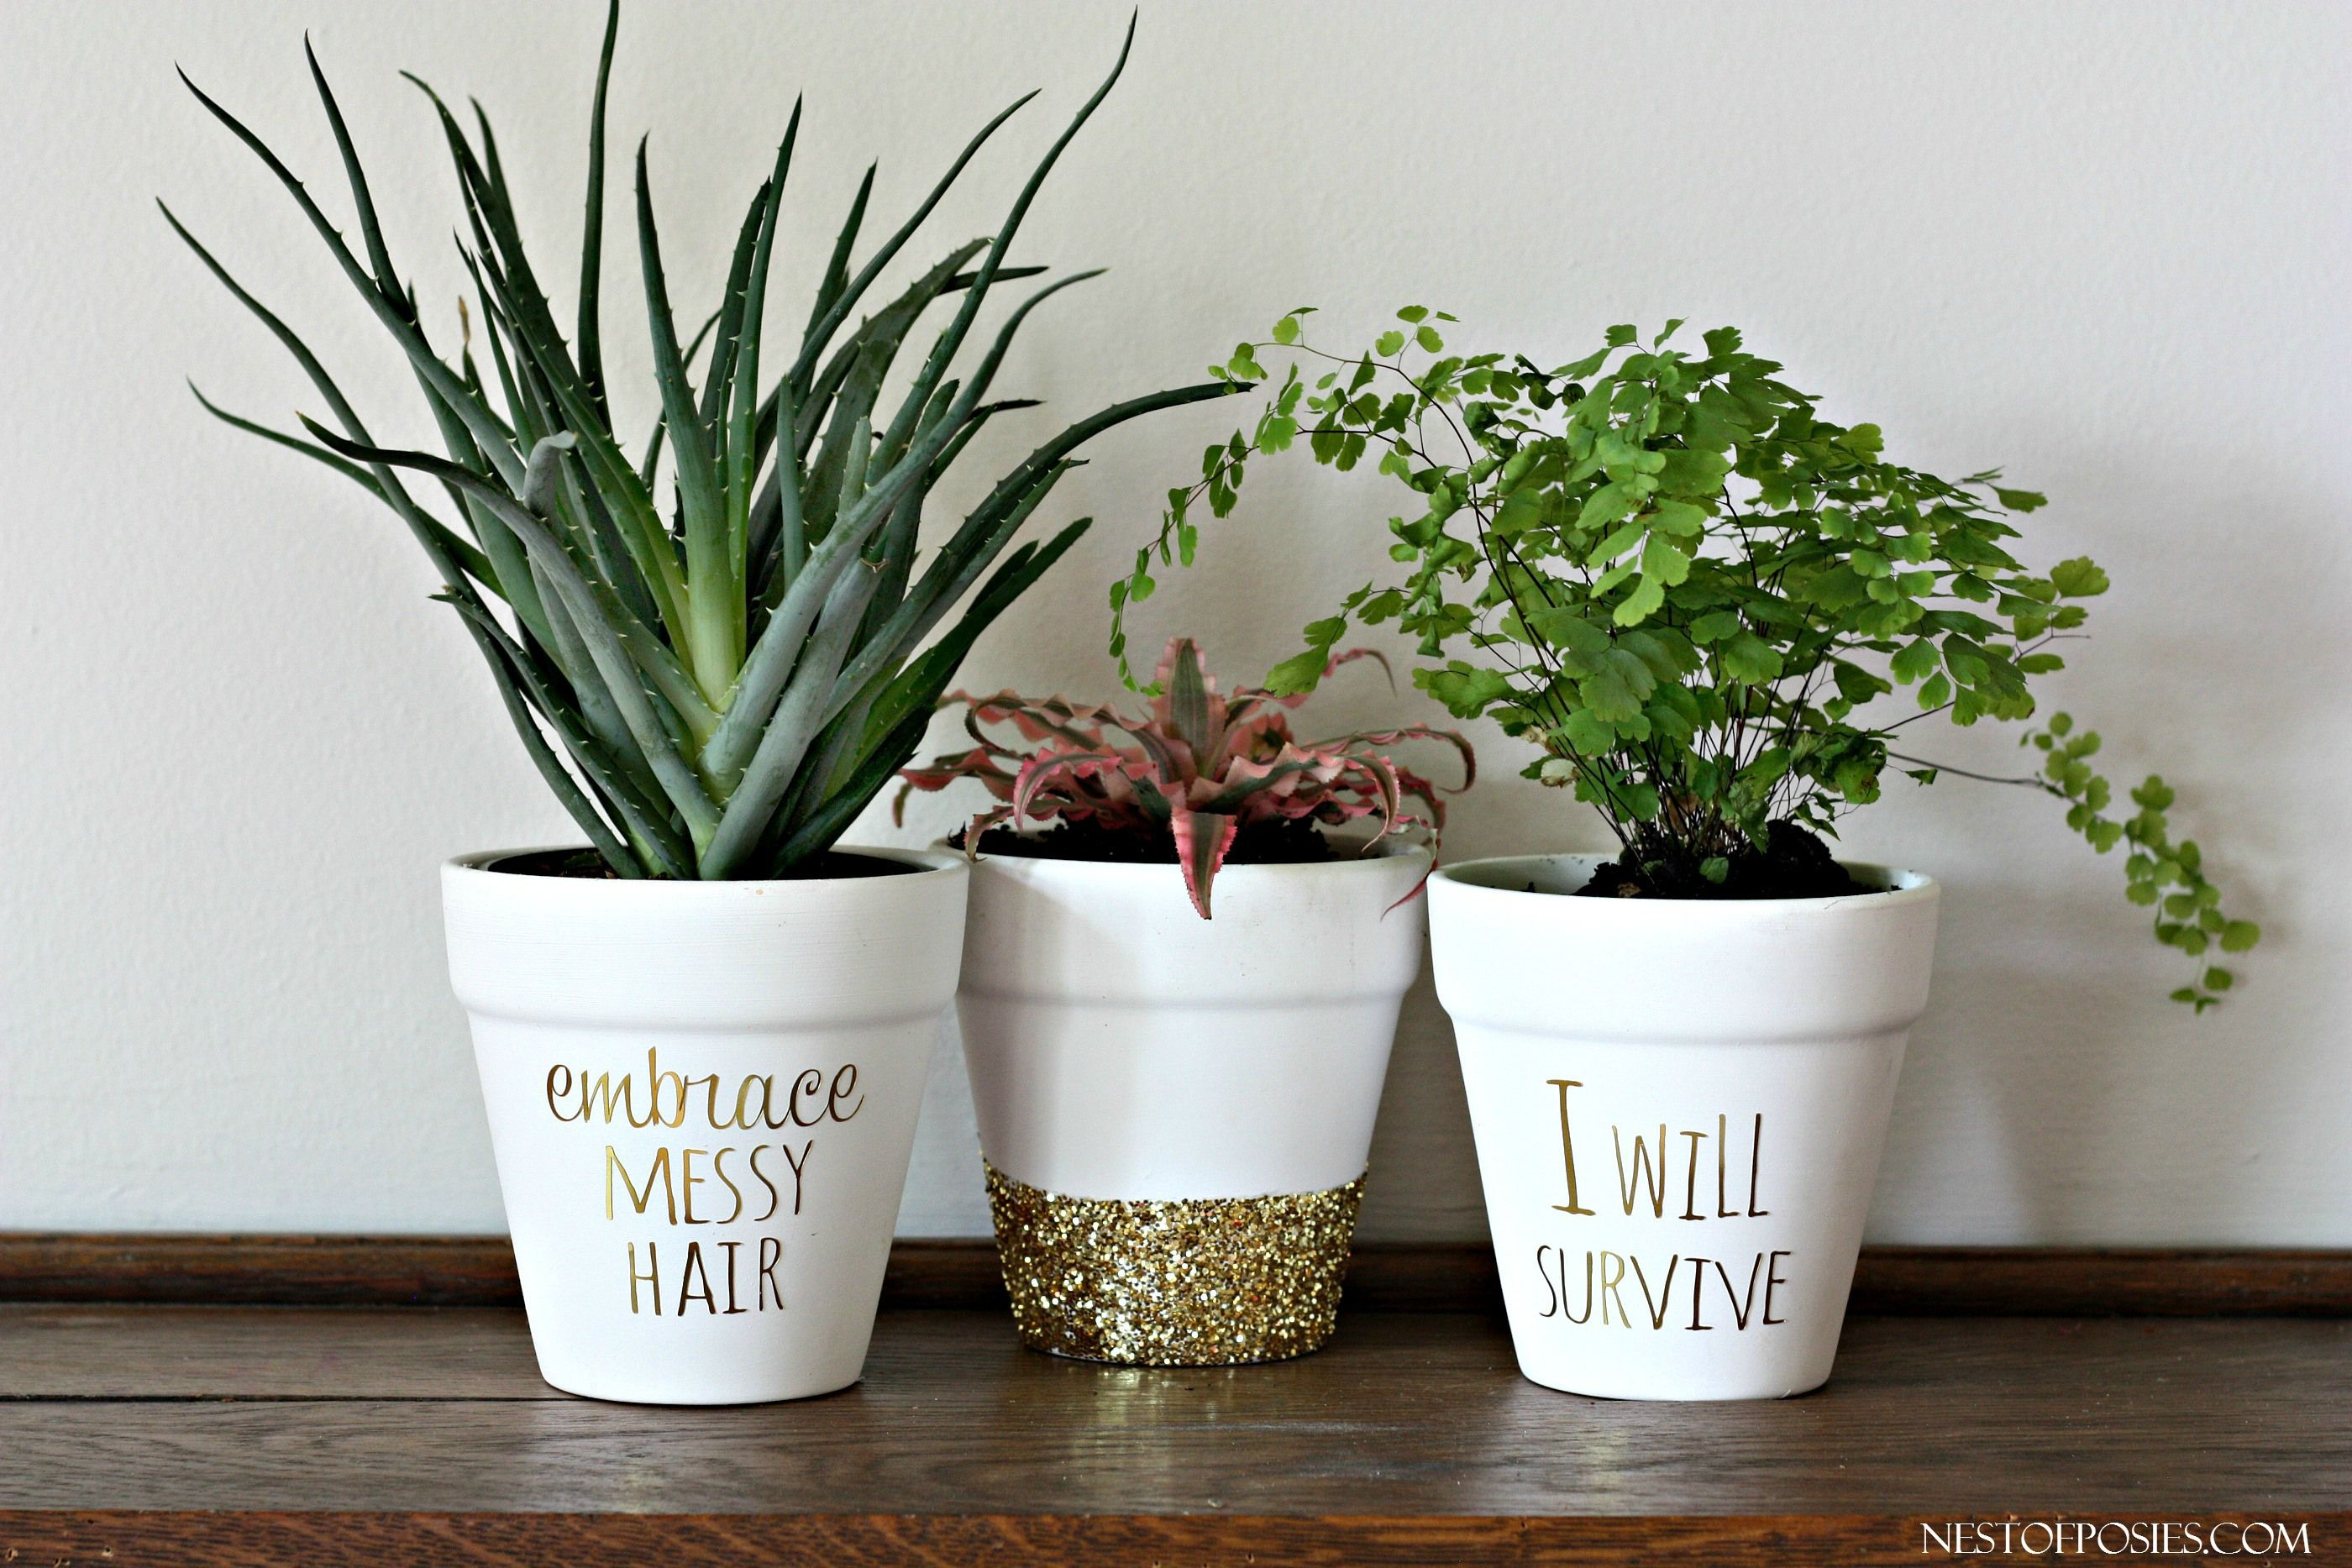 DIY Gold Foil Lettering on Flower Pots . Using this idea for the kitchen  herbs